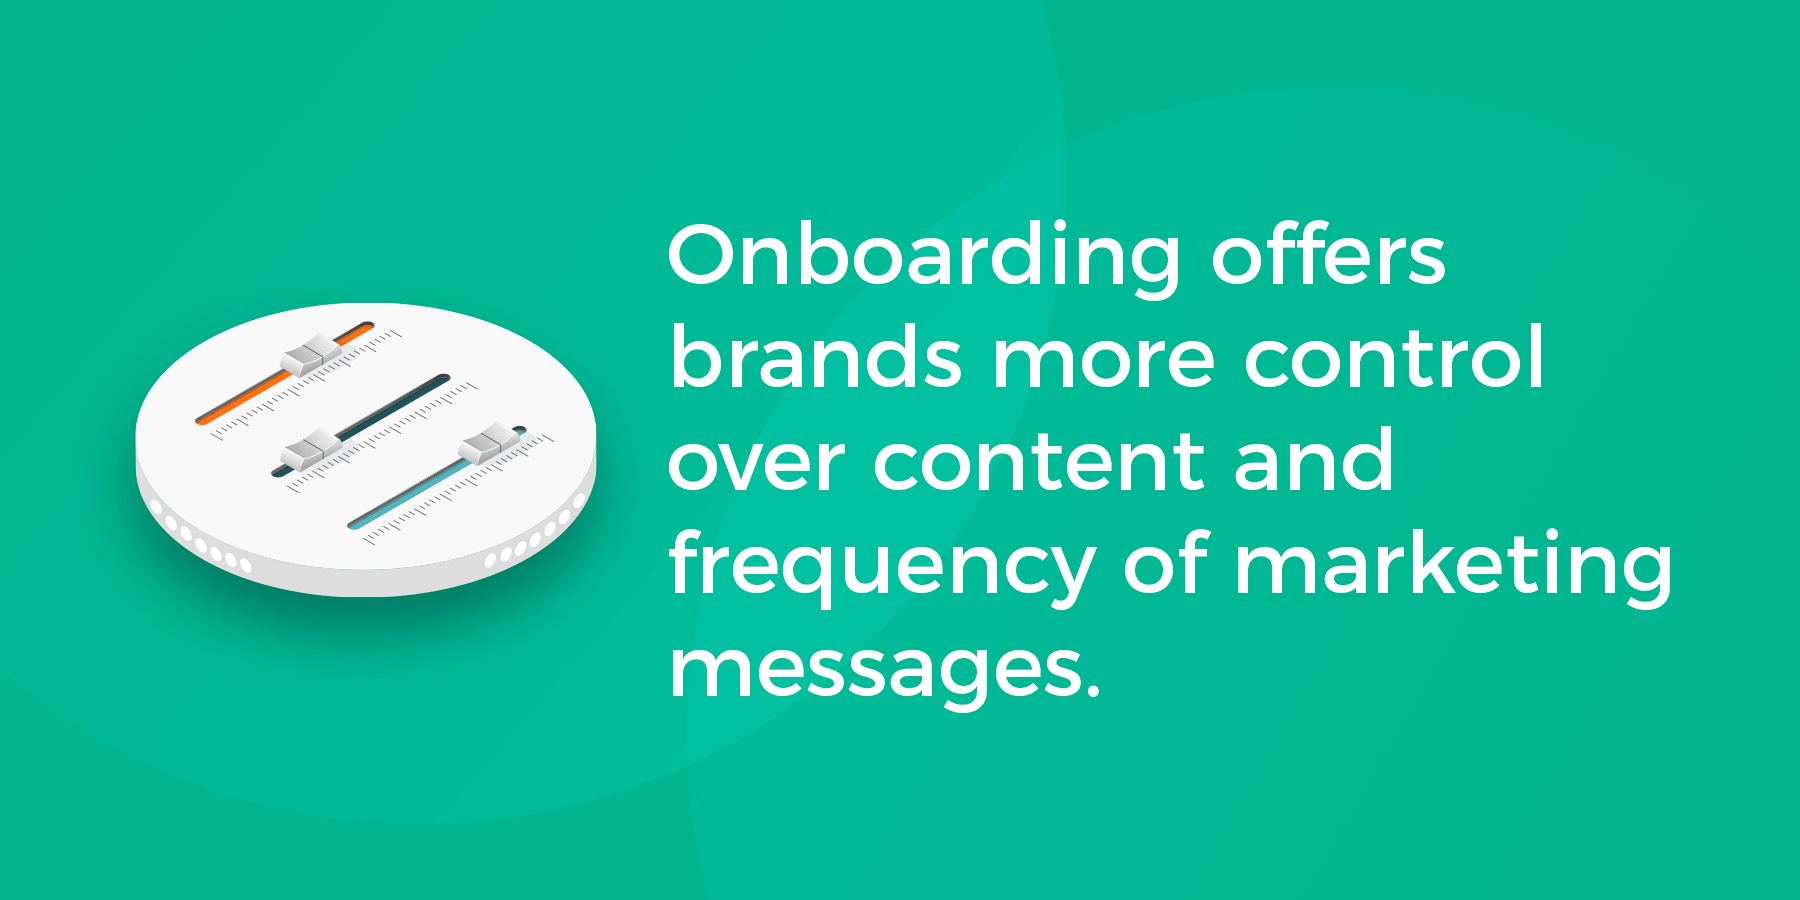 Onboarding offers brands more control over content and frequency of marketing messages